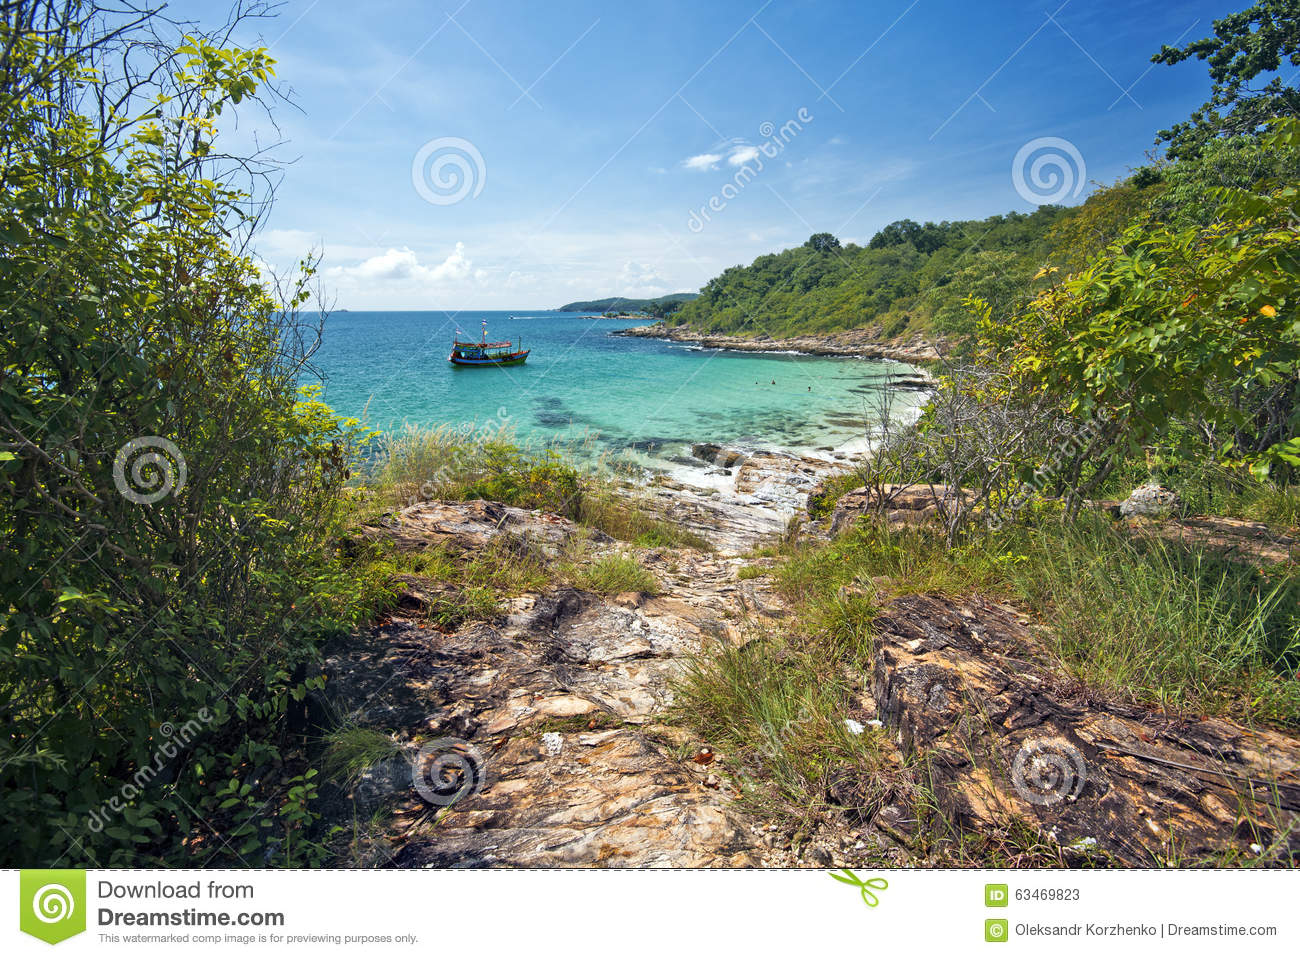 Lagoon Tropical Island: Pathway To Lonely Lagoon Of Tropical Island Stock Image